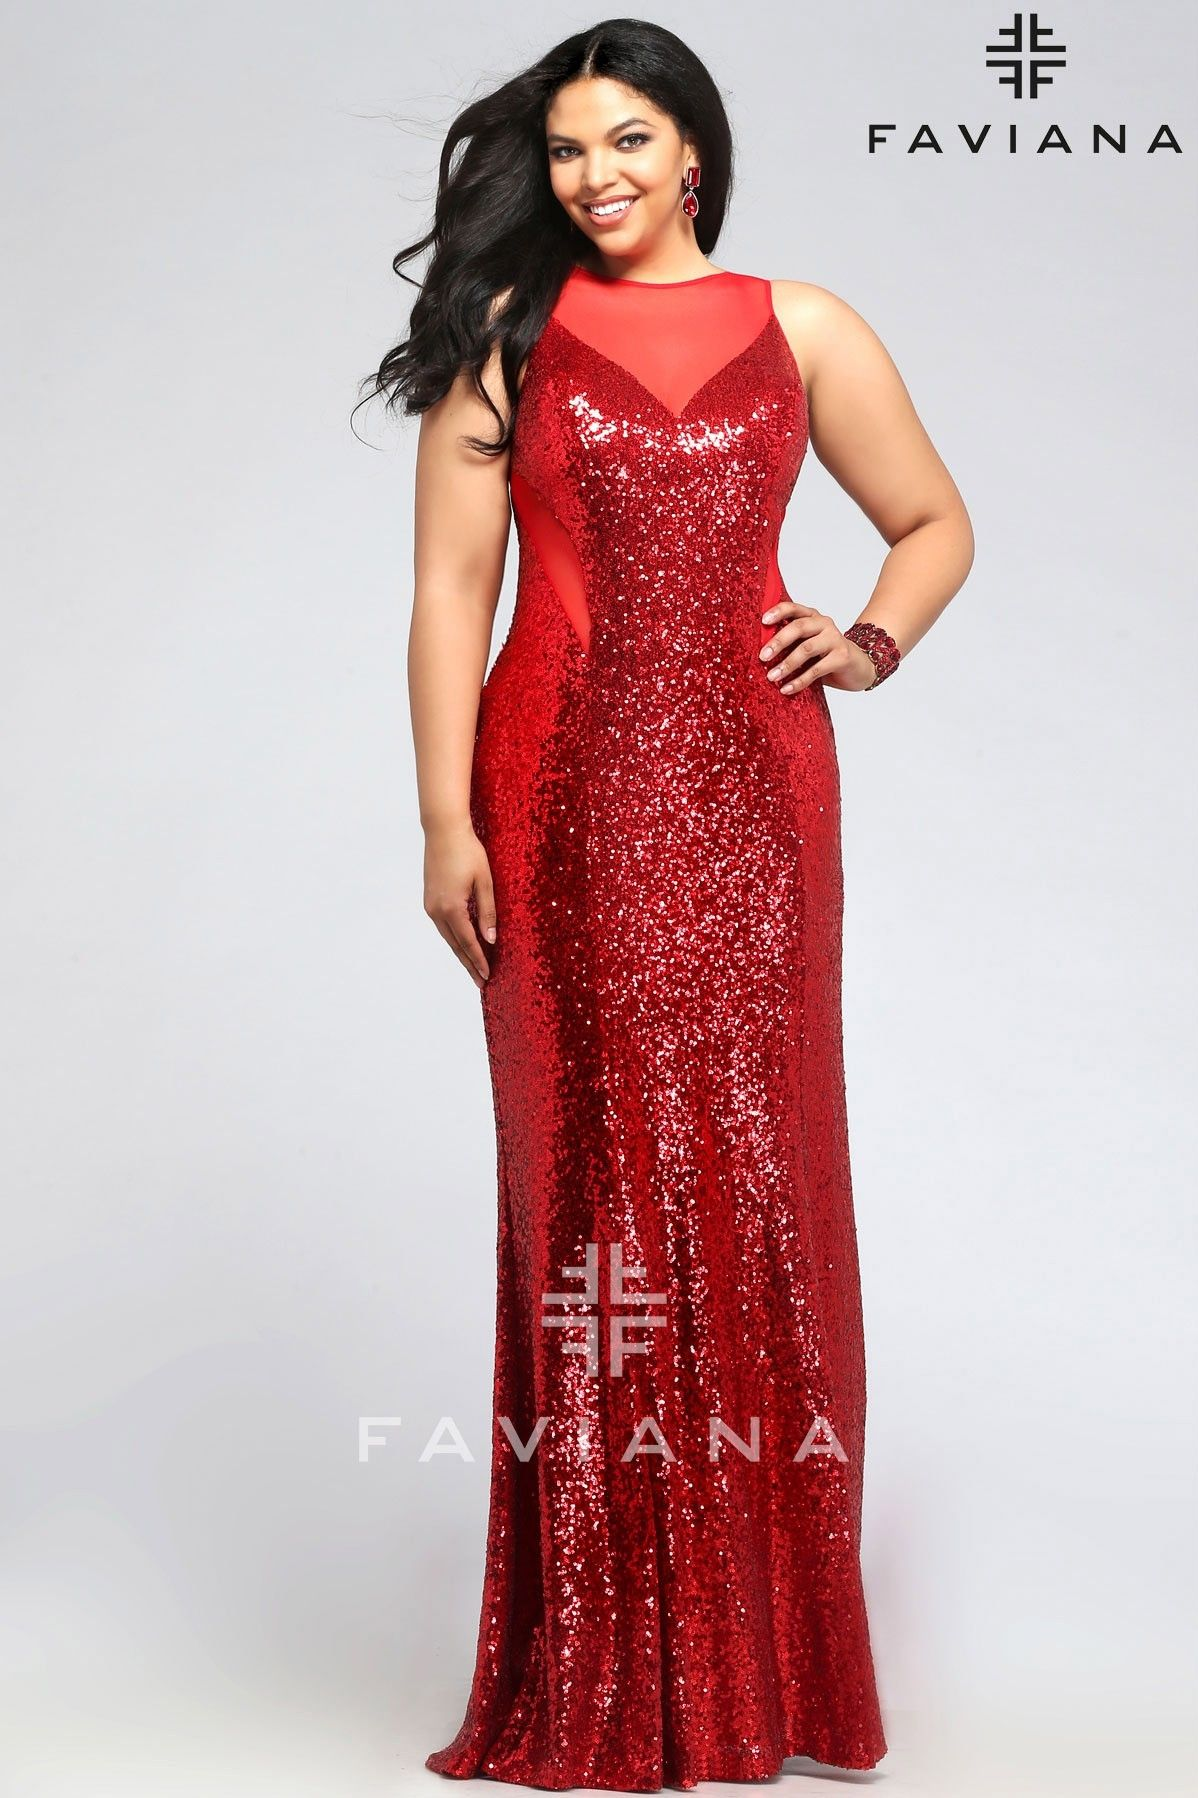 Faviana 9357 Red Sequins Faviana Curve Full Figure Plus Size Prom ...